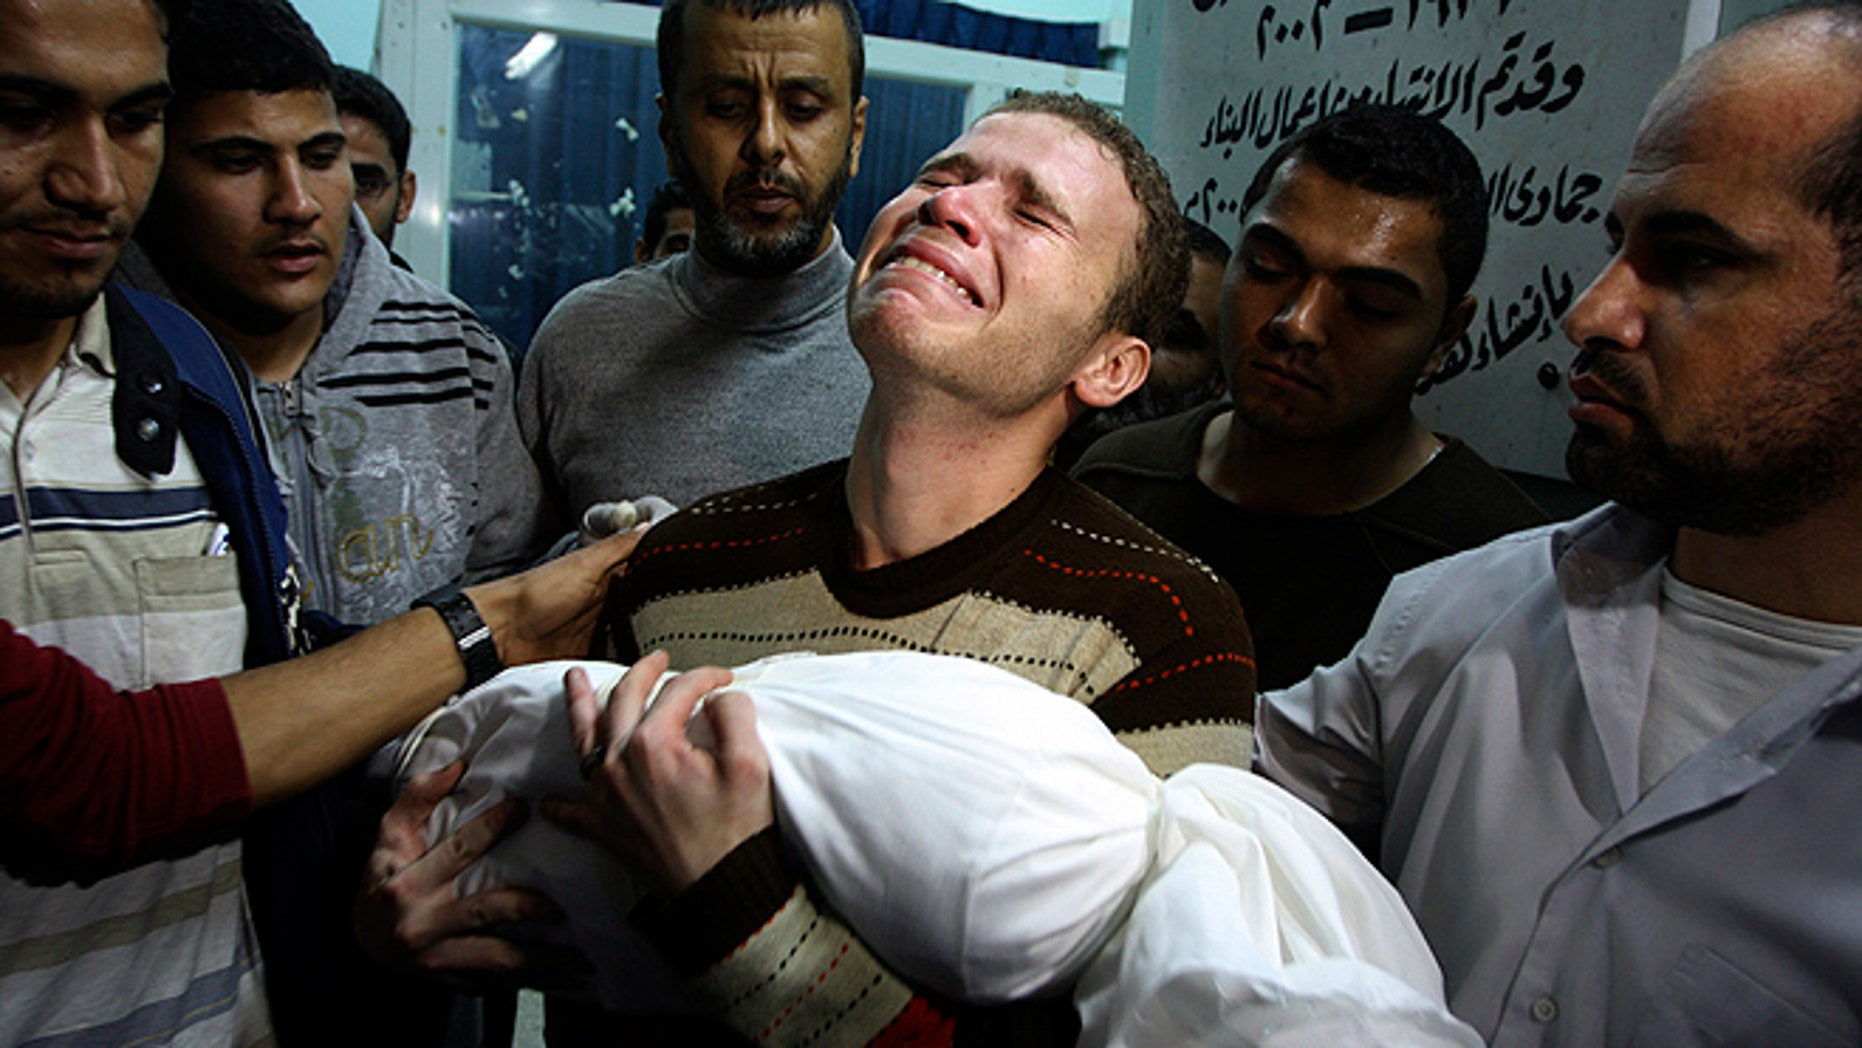 In this Nov. 14, 2012 file photo, an anguished Jihad al-Masharawi, a BBC reporter, clutches his slain 11-month-old son Omar in Gaza City. An errant Palestinian rocket, not an Israeli airstrike, likely killed the child during fighting in the Hamas-ruled territory, a U.N. report indicated, challenging the widely believed story behind the image which became a symbol of what Palestinians said was Israeli aggression. (AP)